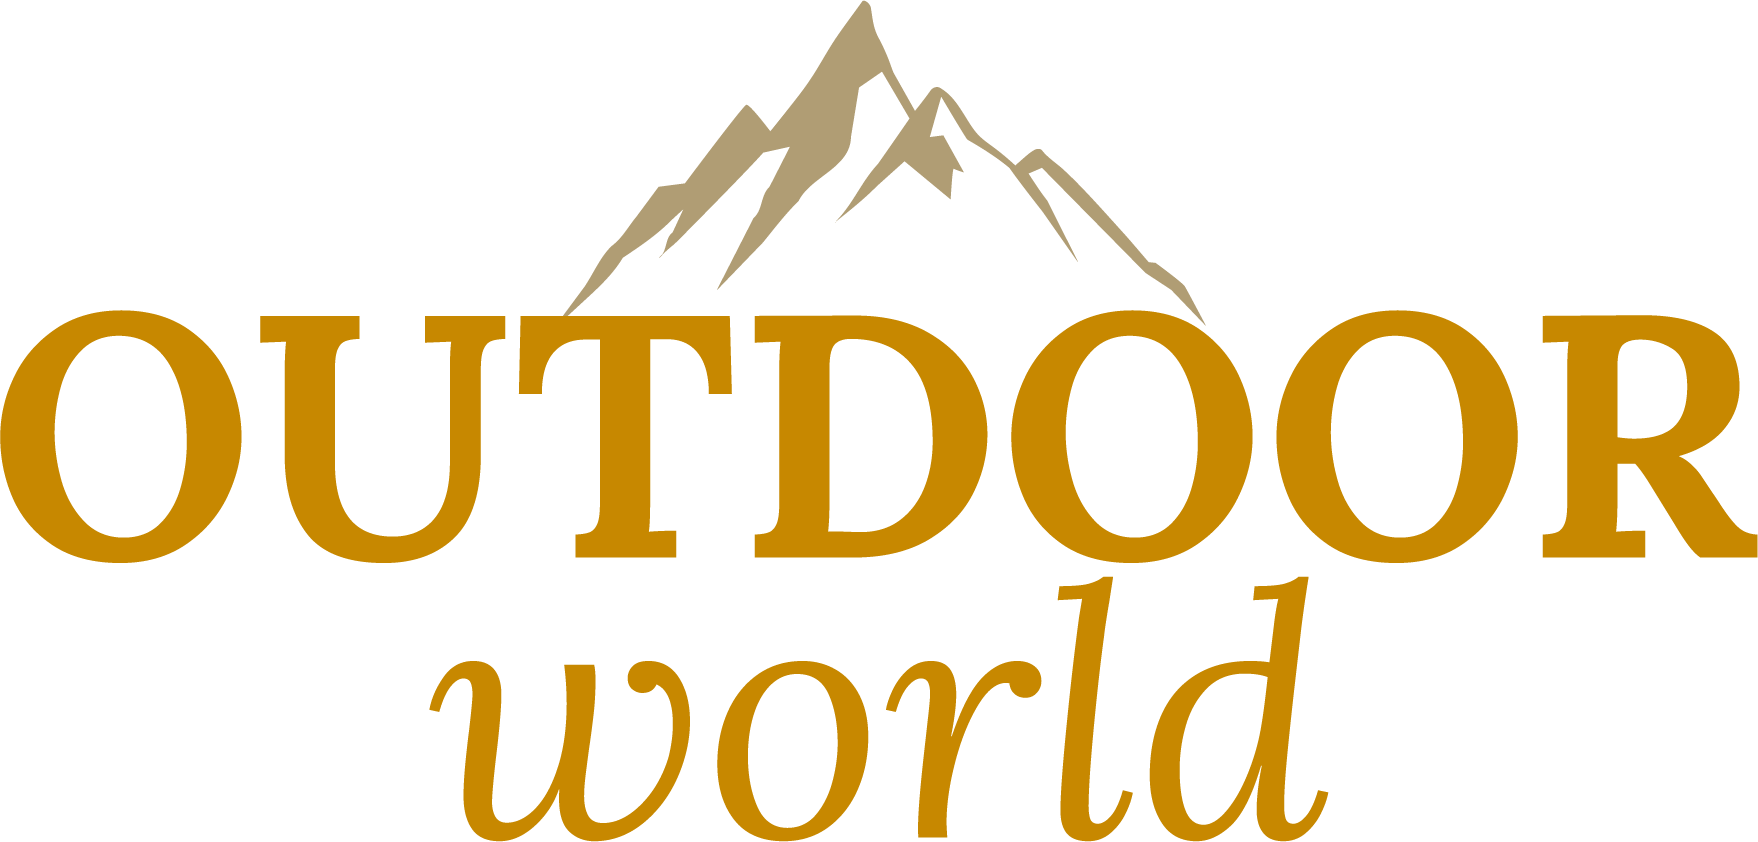 Outdoor world logo